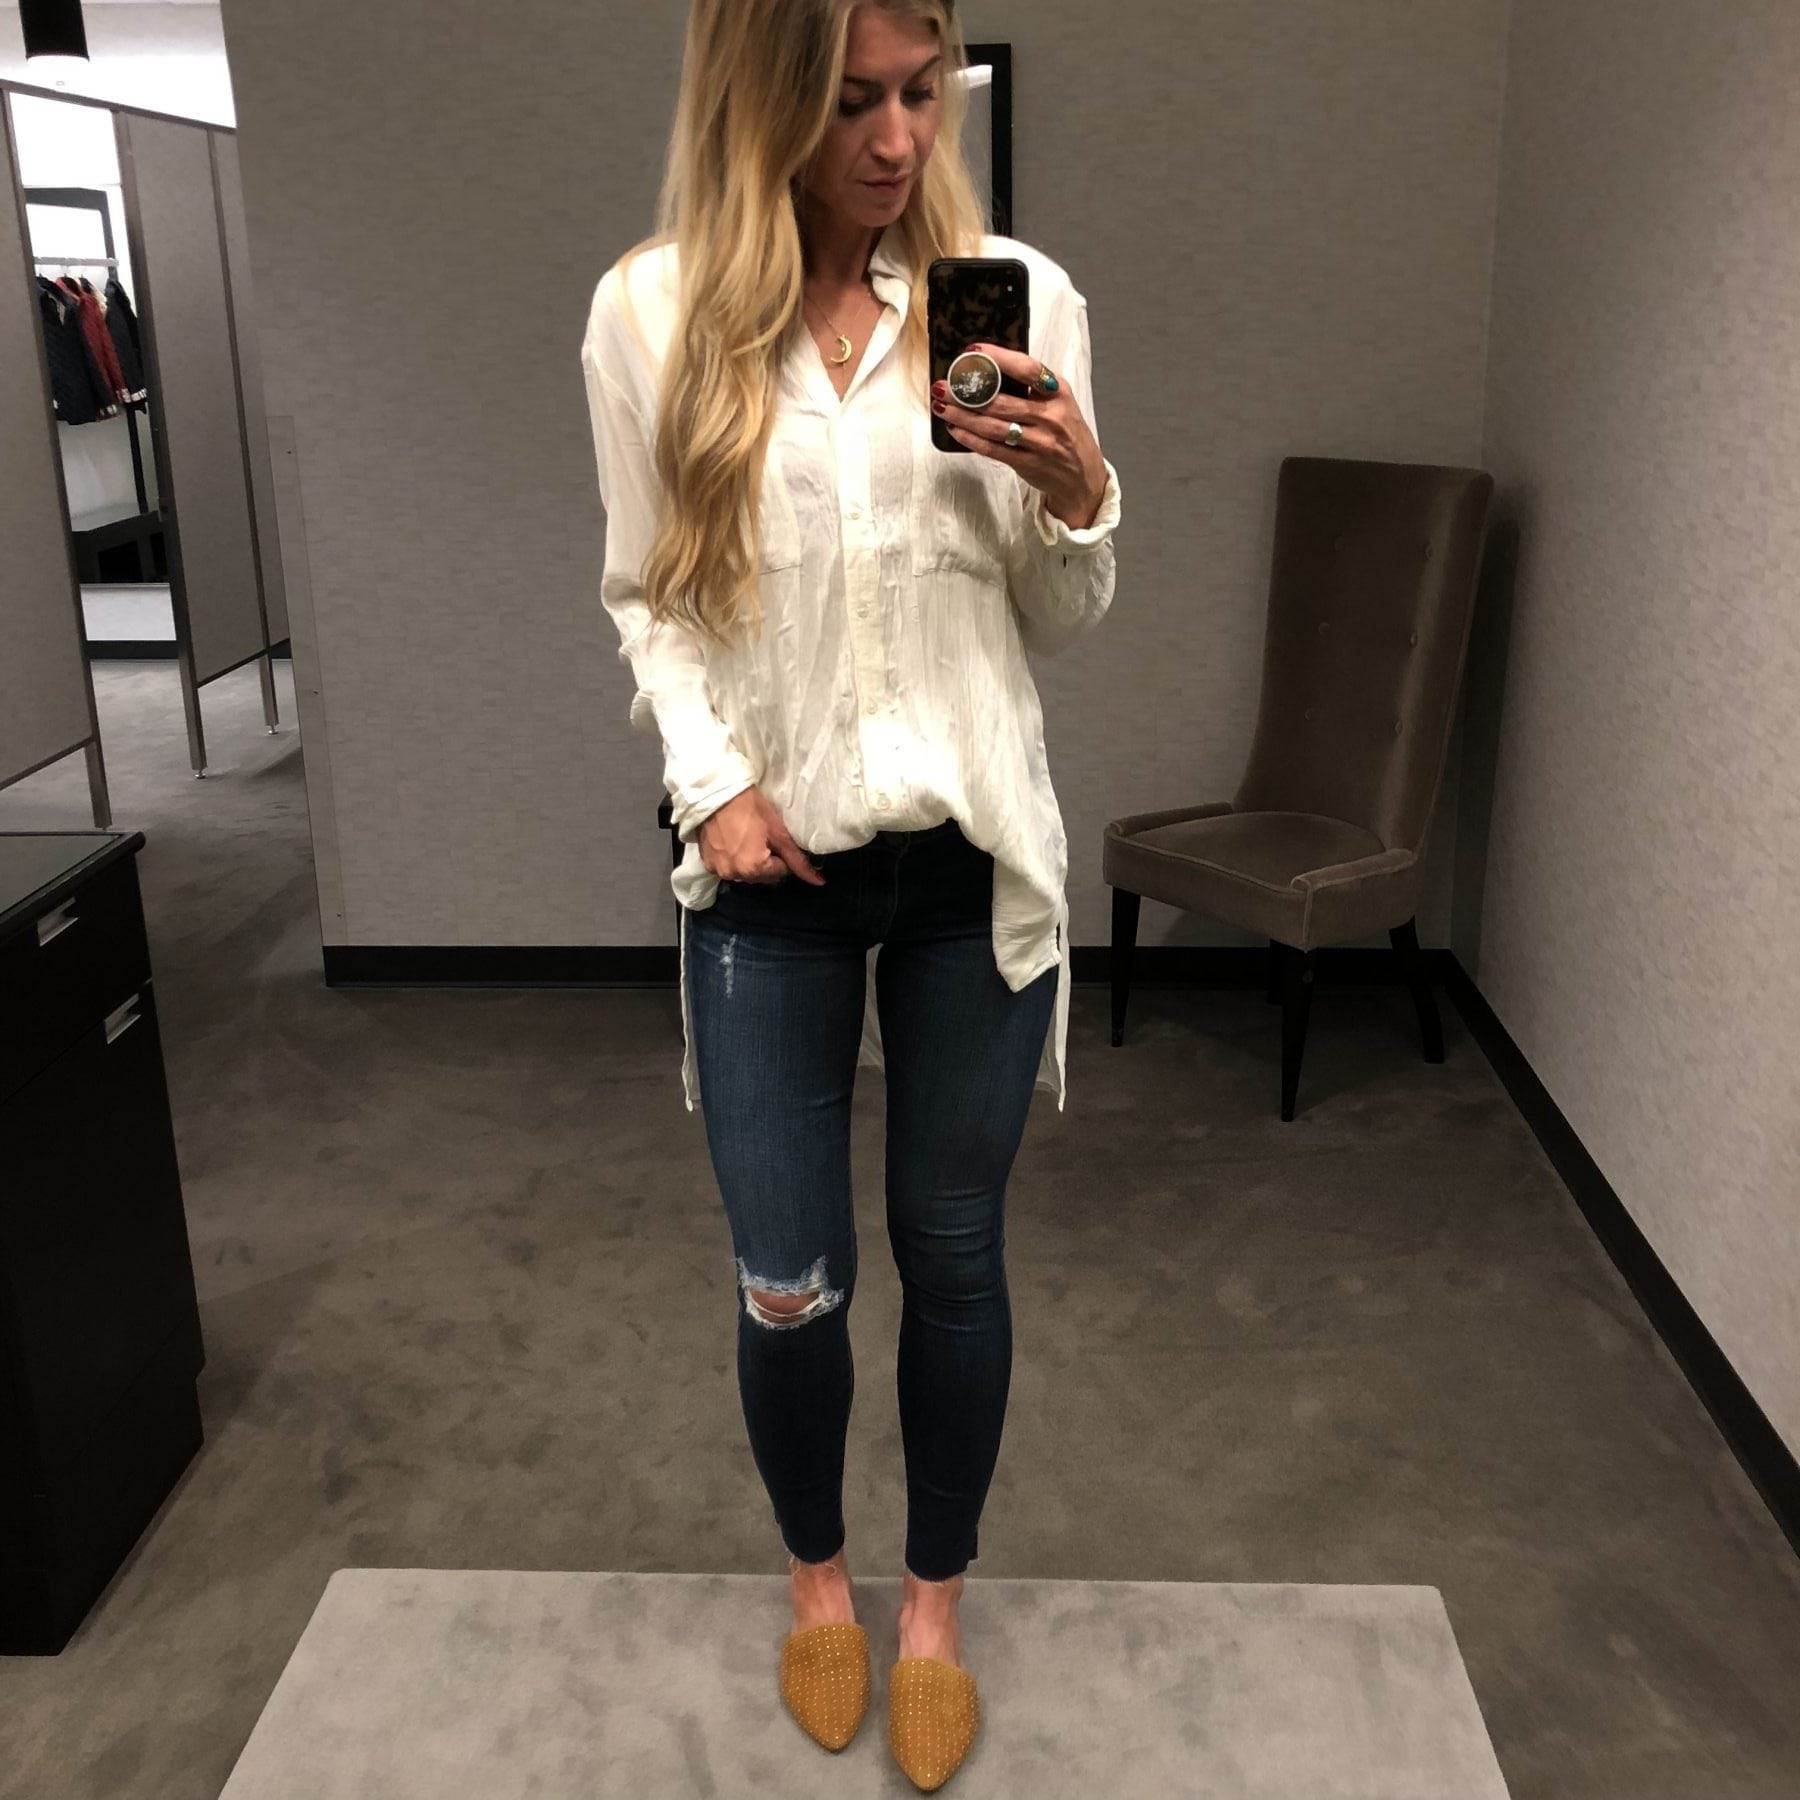 Nordstrom Anniversary Sale Outfits: White blouse and jeans